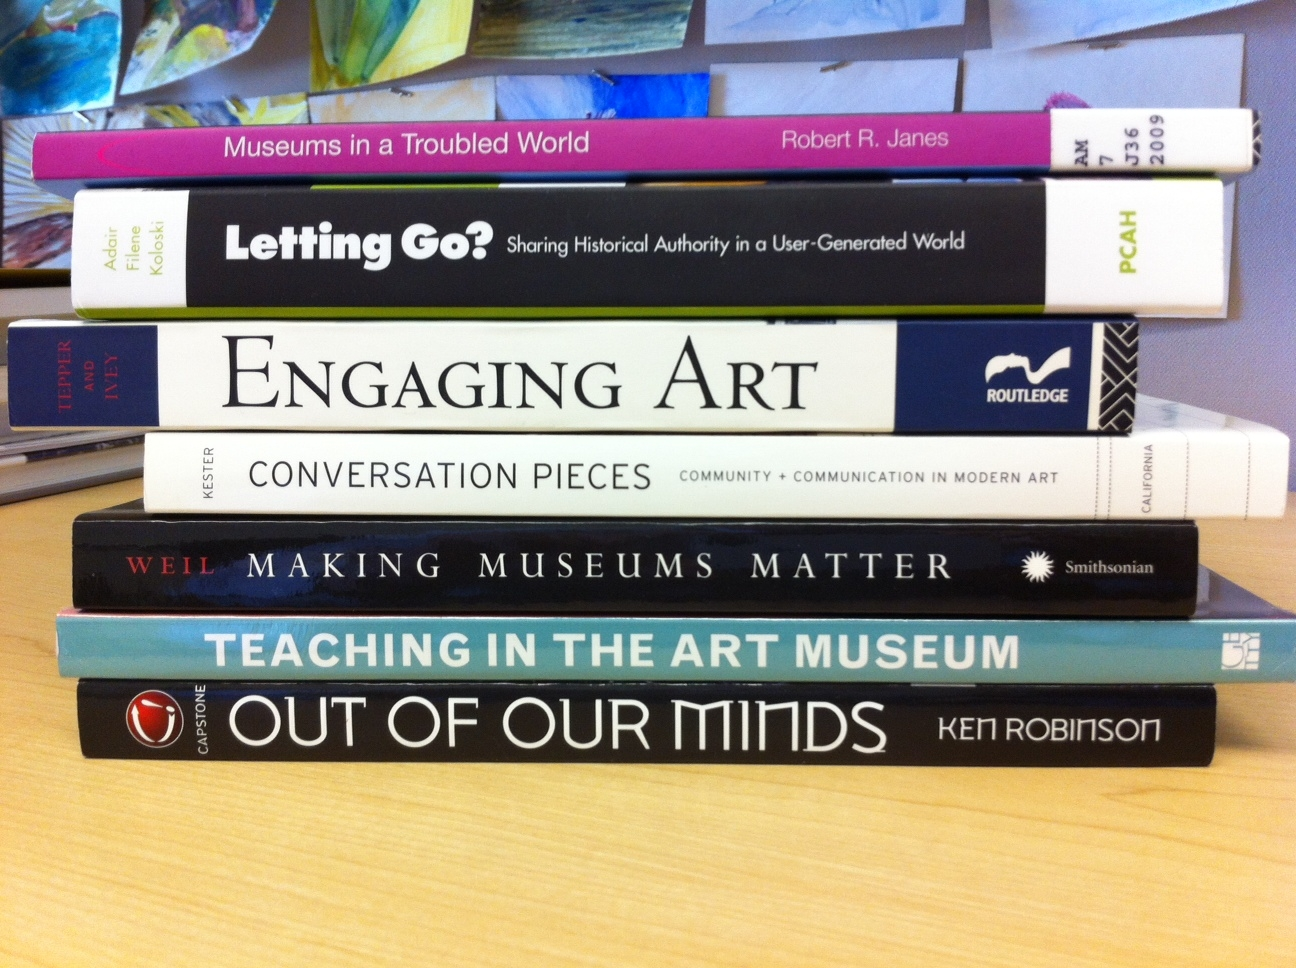 Creative Book Spine Design : Book spine poetry museum edition art teaching